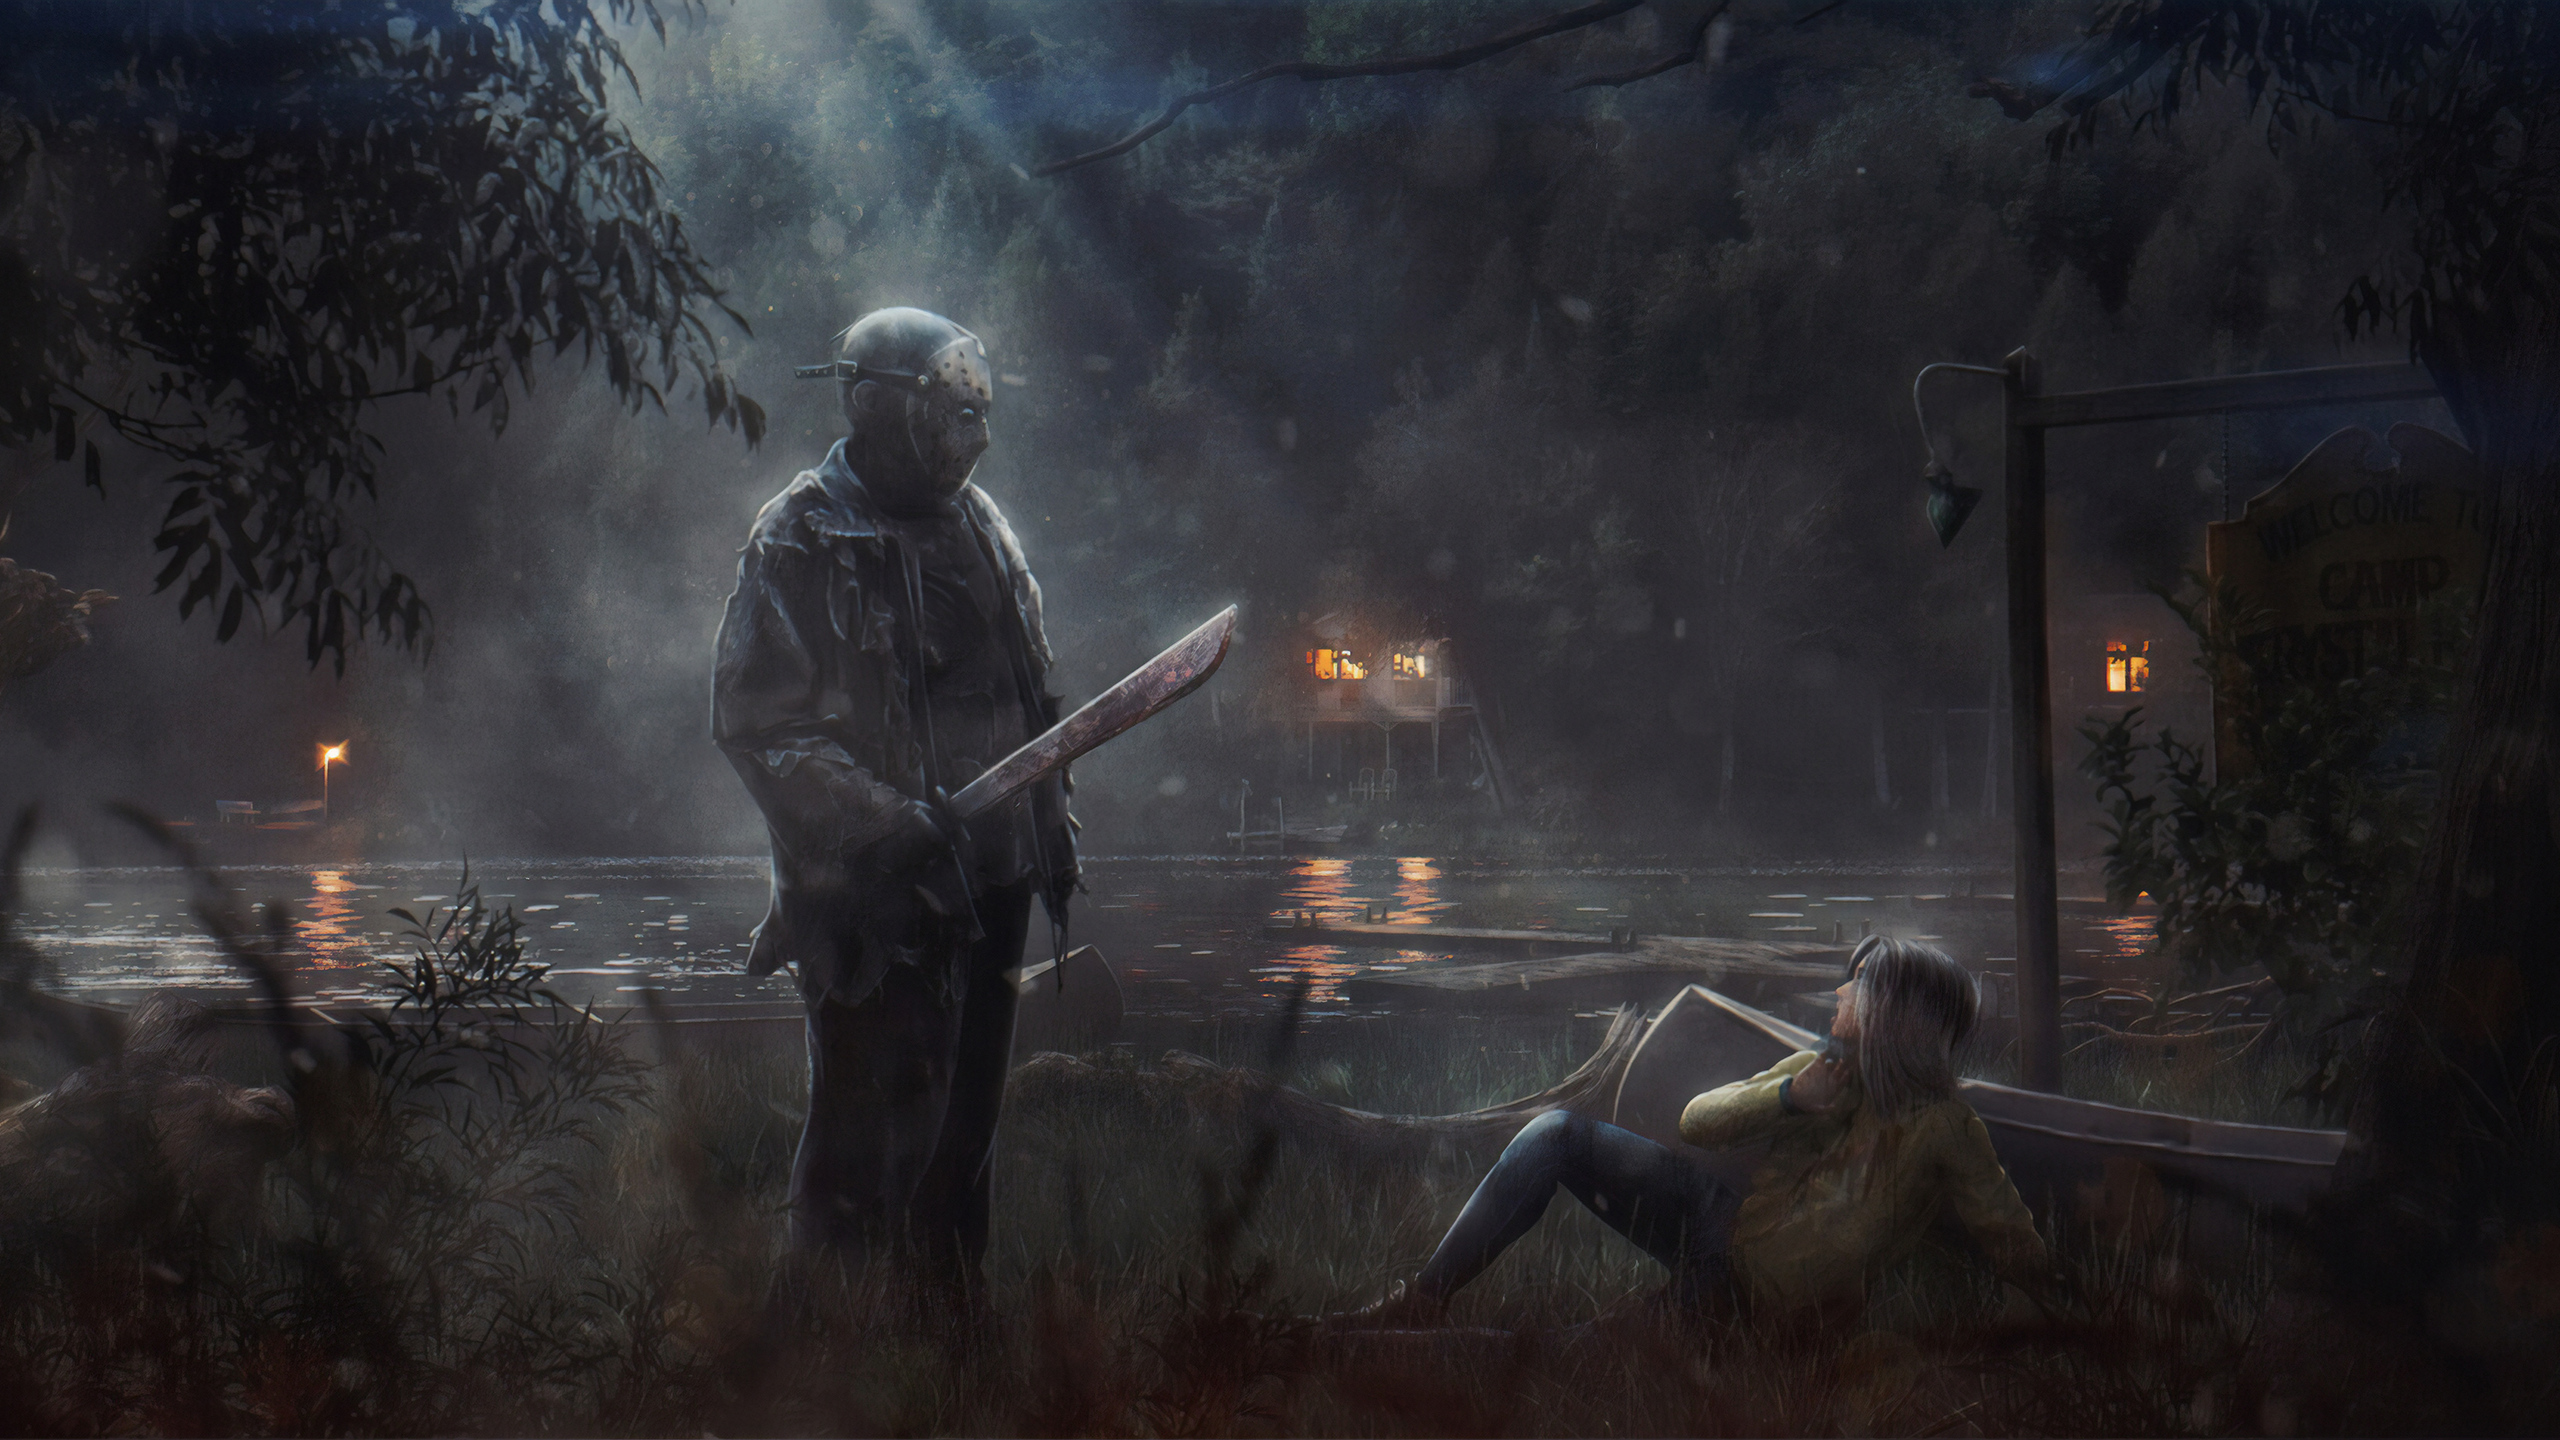 2560x1440 Friday The 13th Game 4k 1440p Resolution Hd 4k